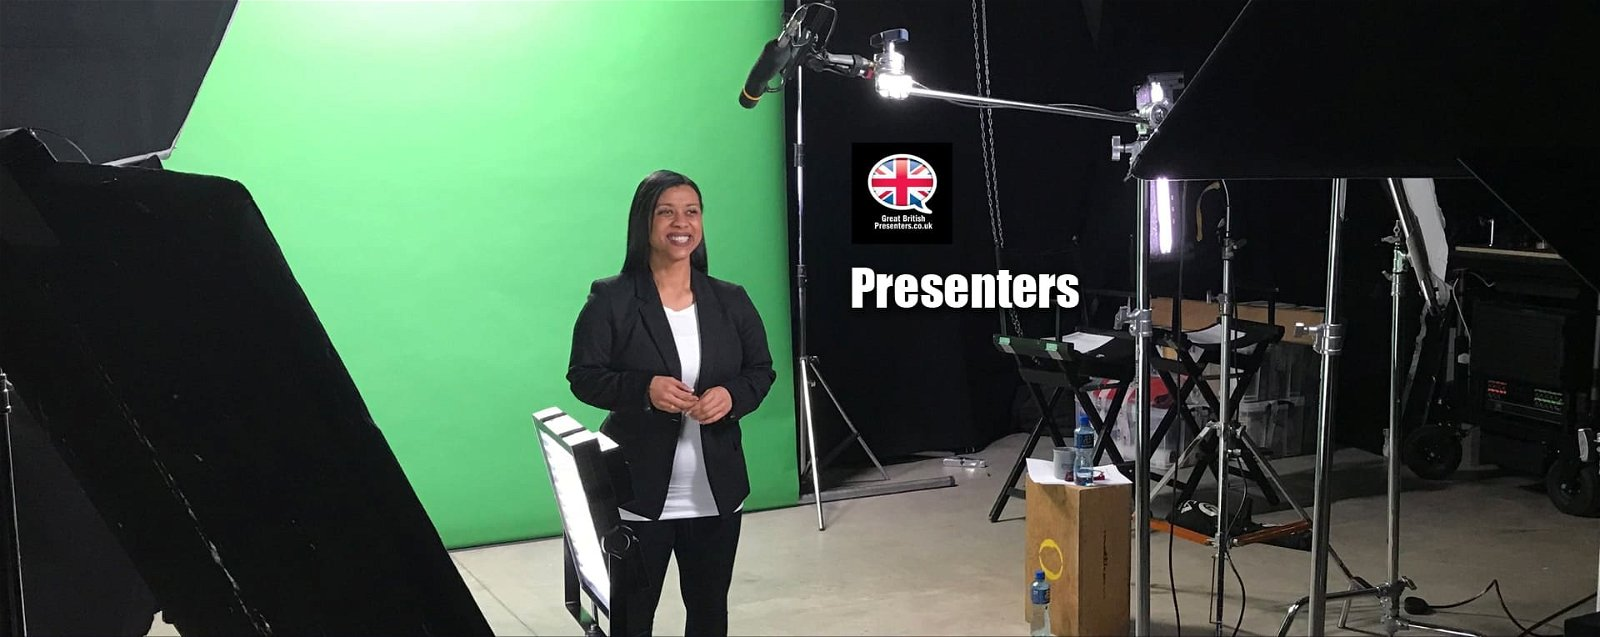 TV Film Video green screen youtube studio location explainers elearning at Great British Presenters-min